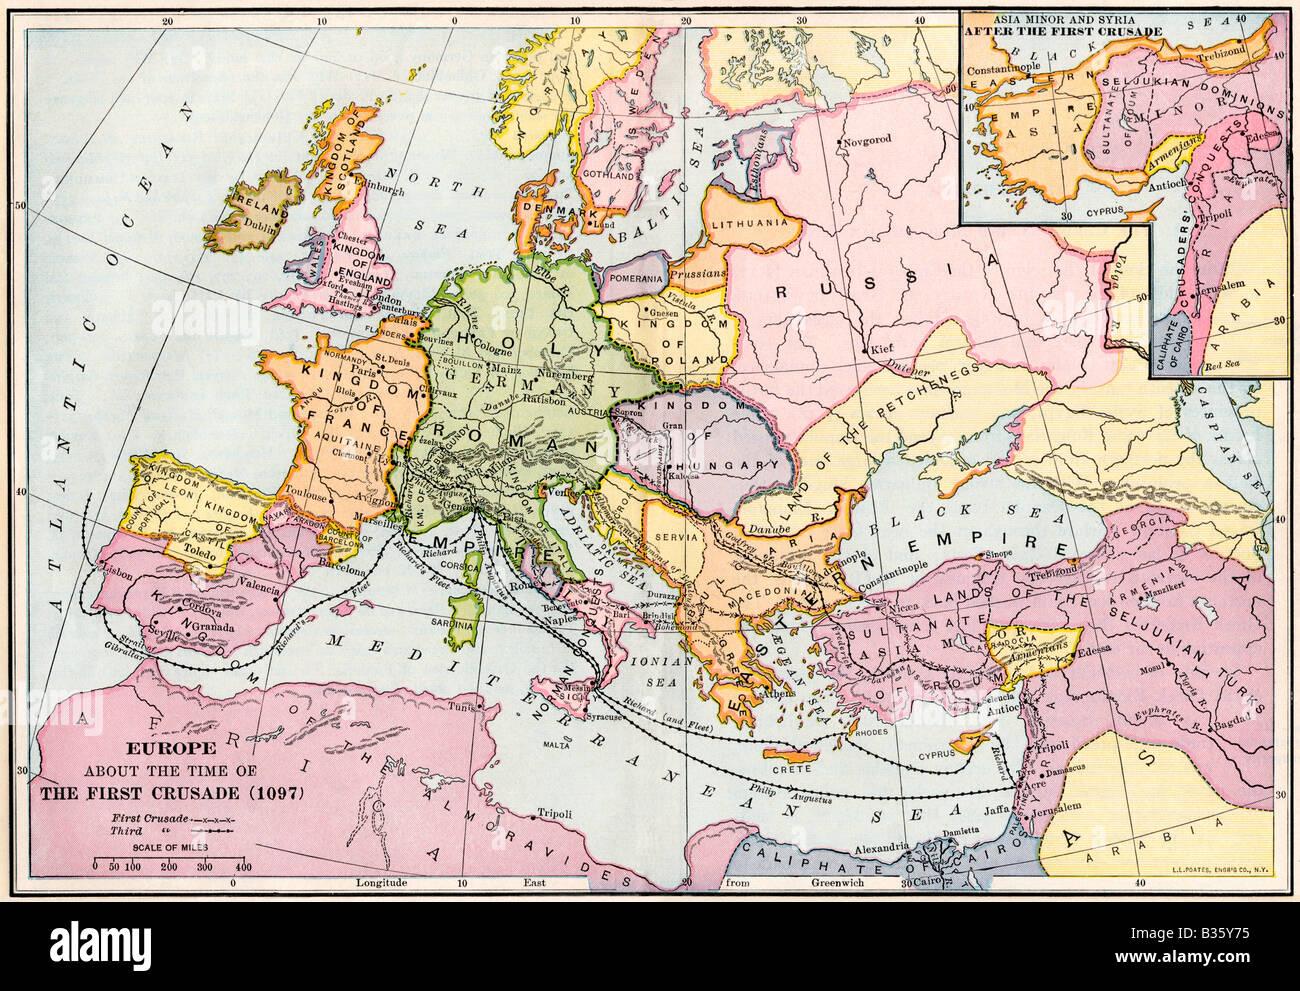 Picture of: Map Of Europe At The Time Of The First Crusade 1097 Ad Color Stock Photo Alamy